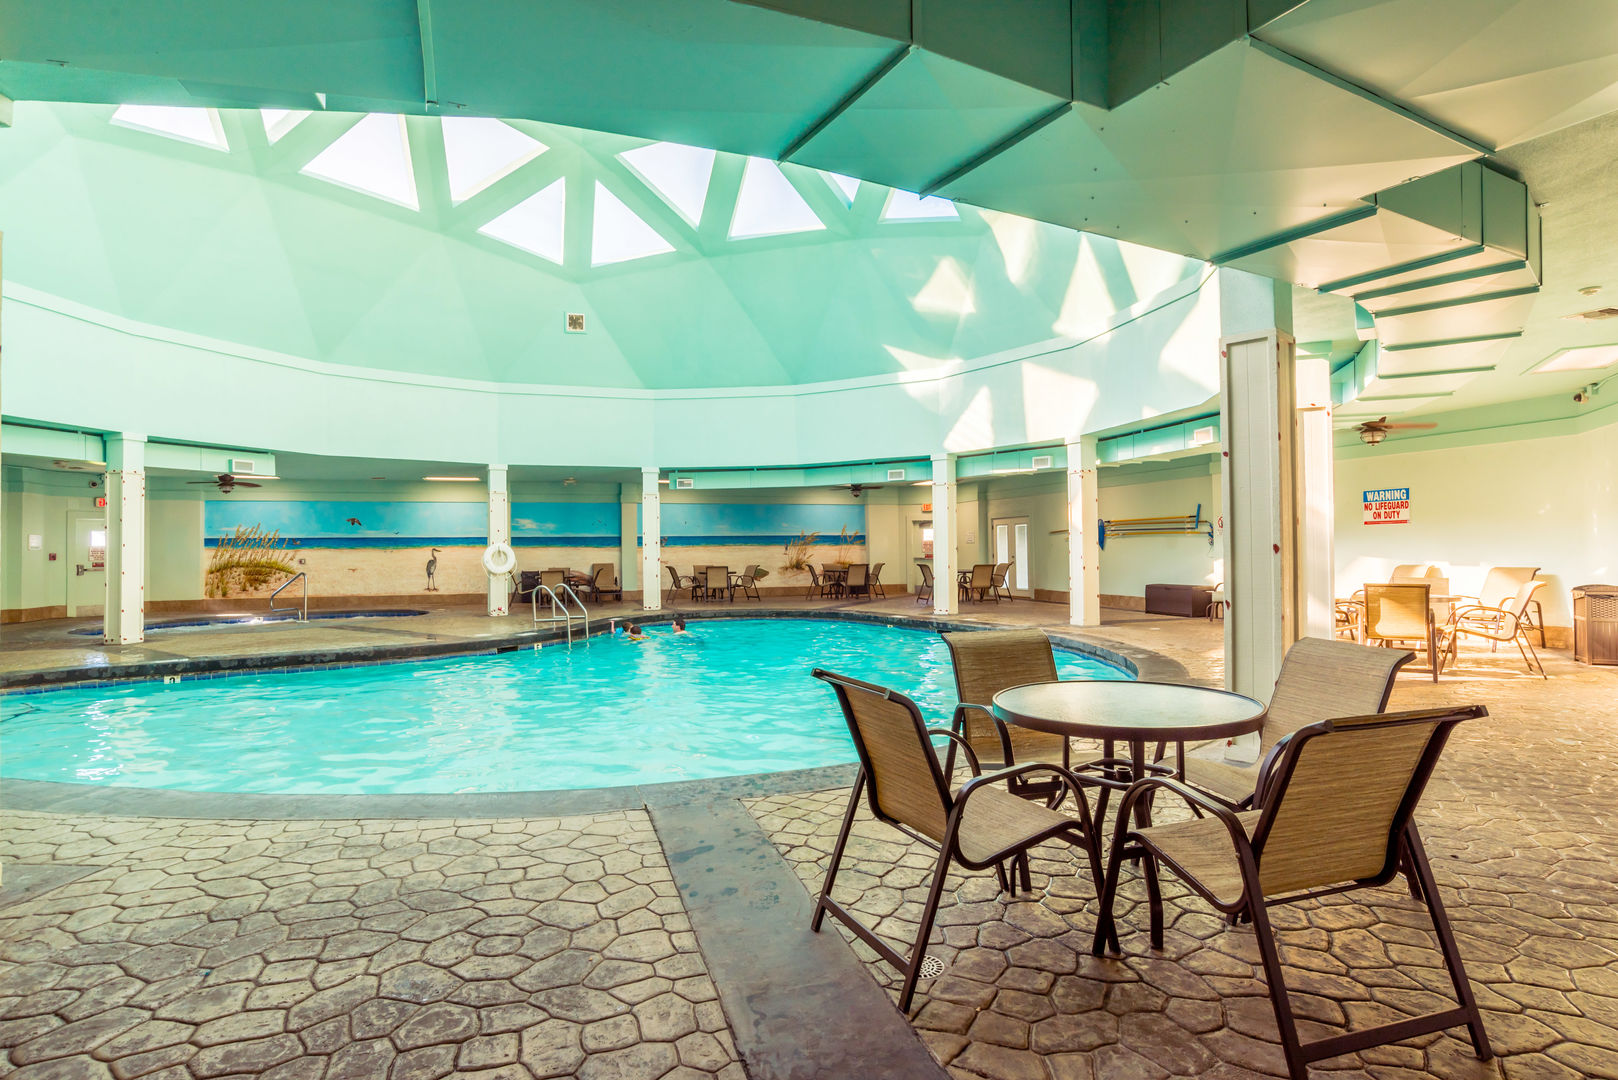 Dive into the pleasures of life from the community pool!